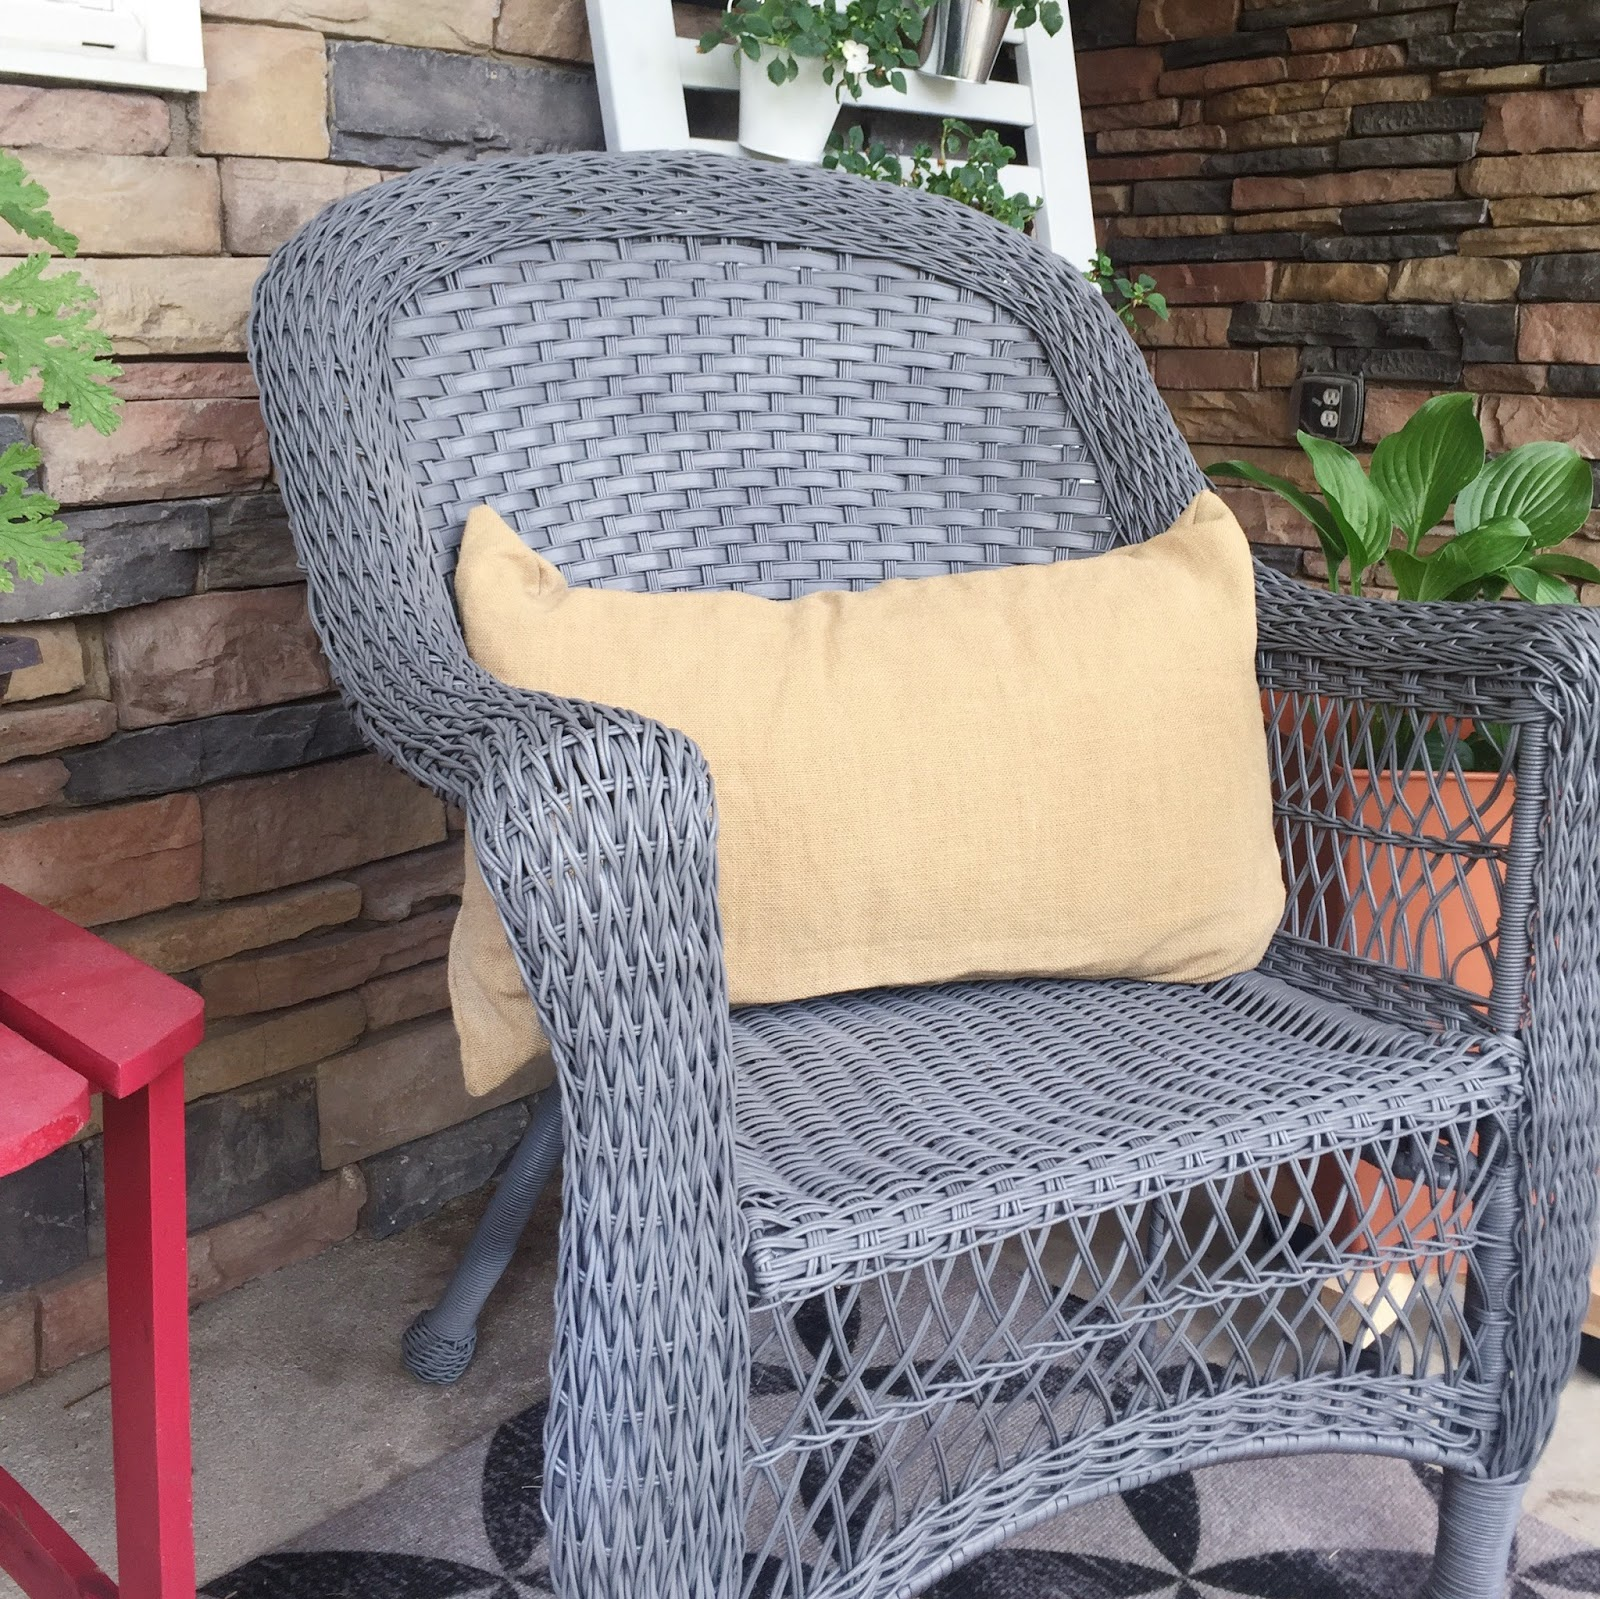 Wicker Furniture Spray Paint